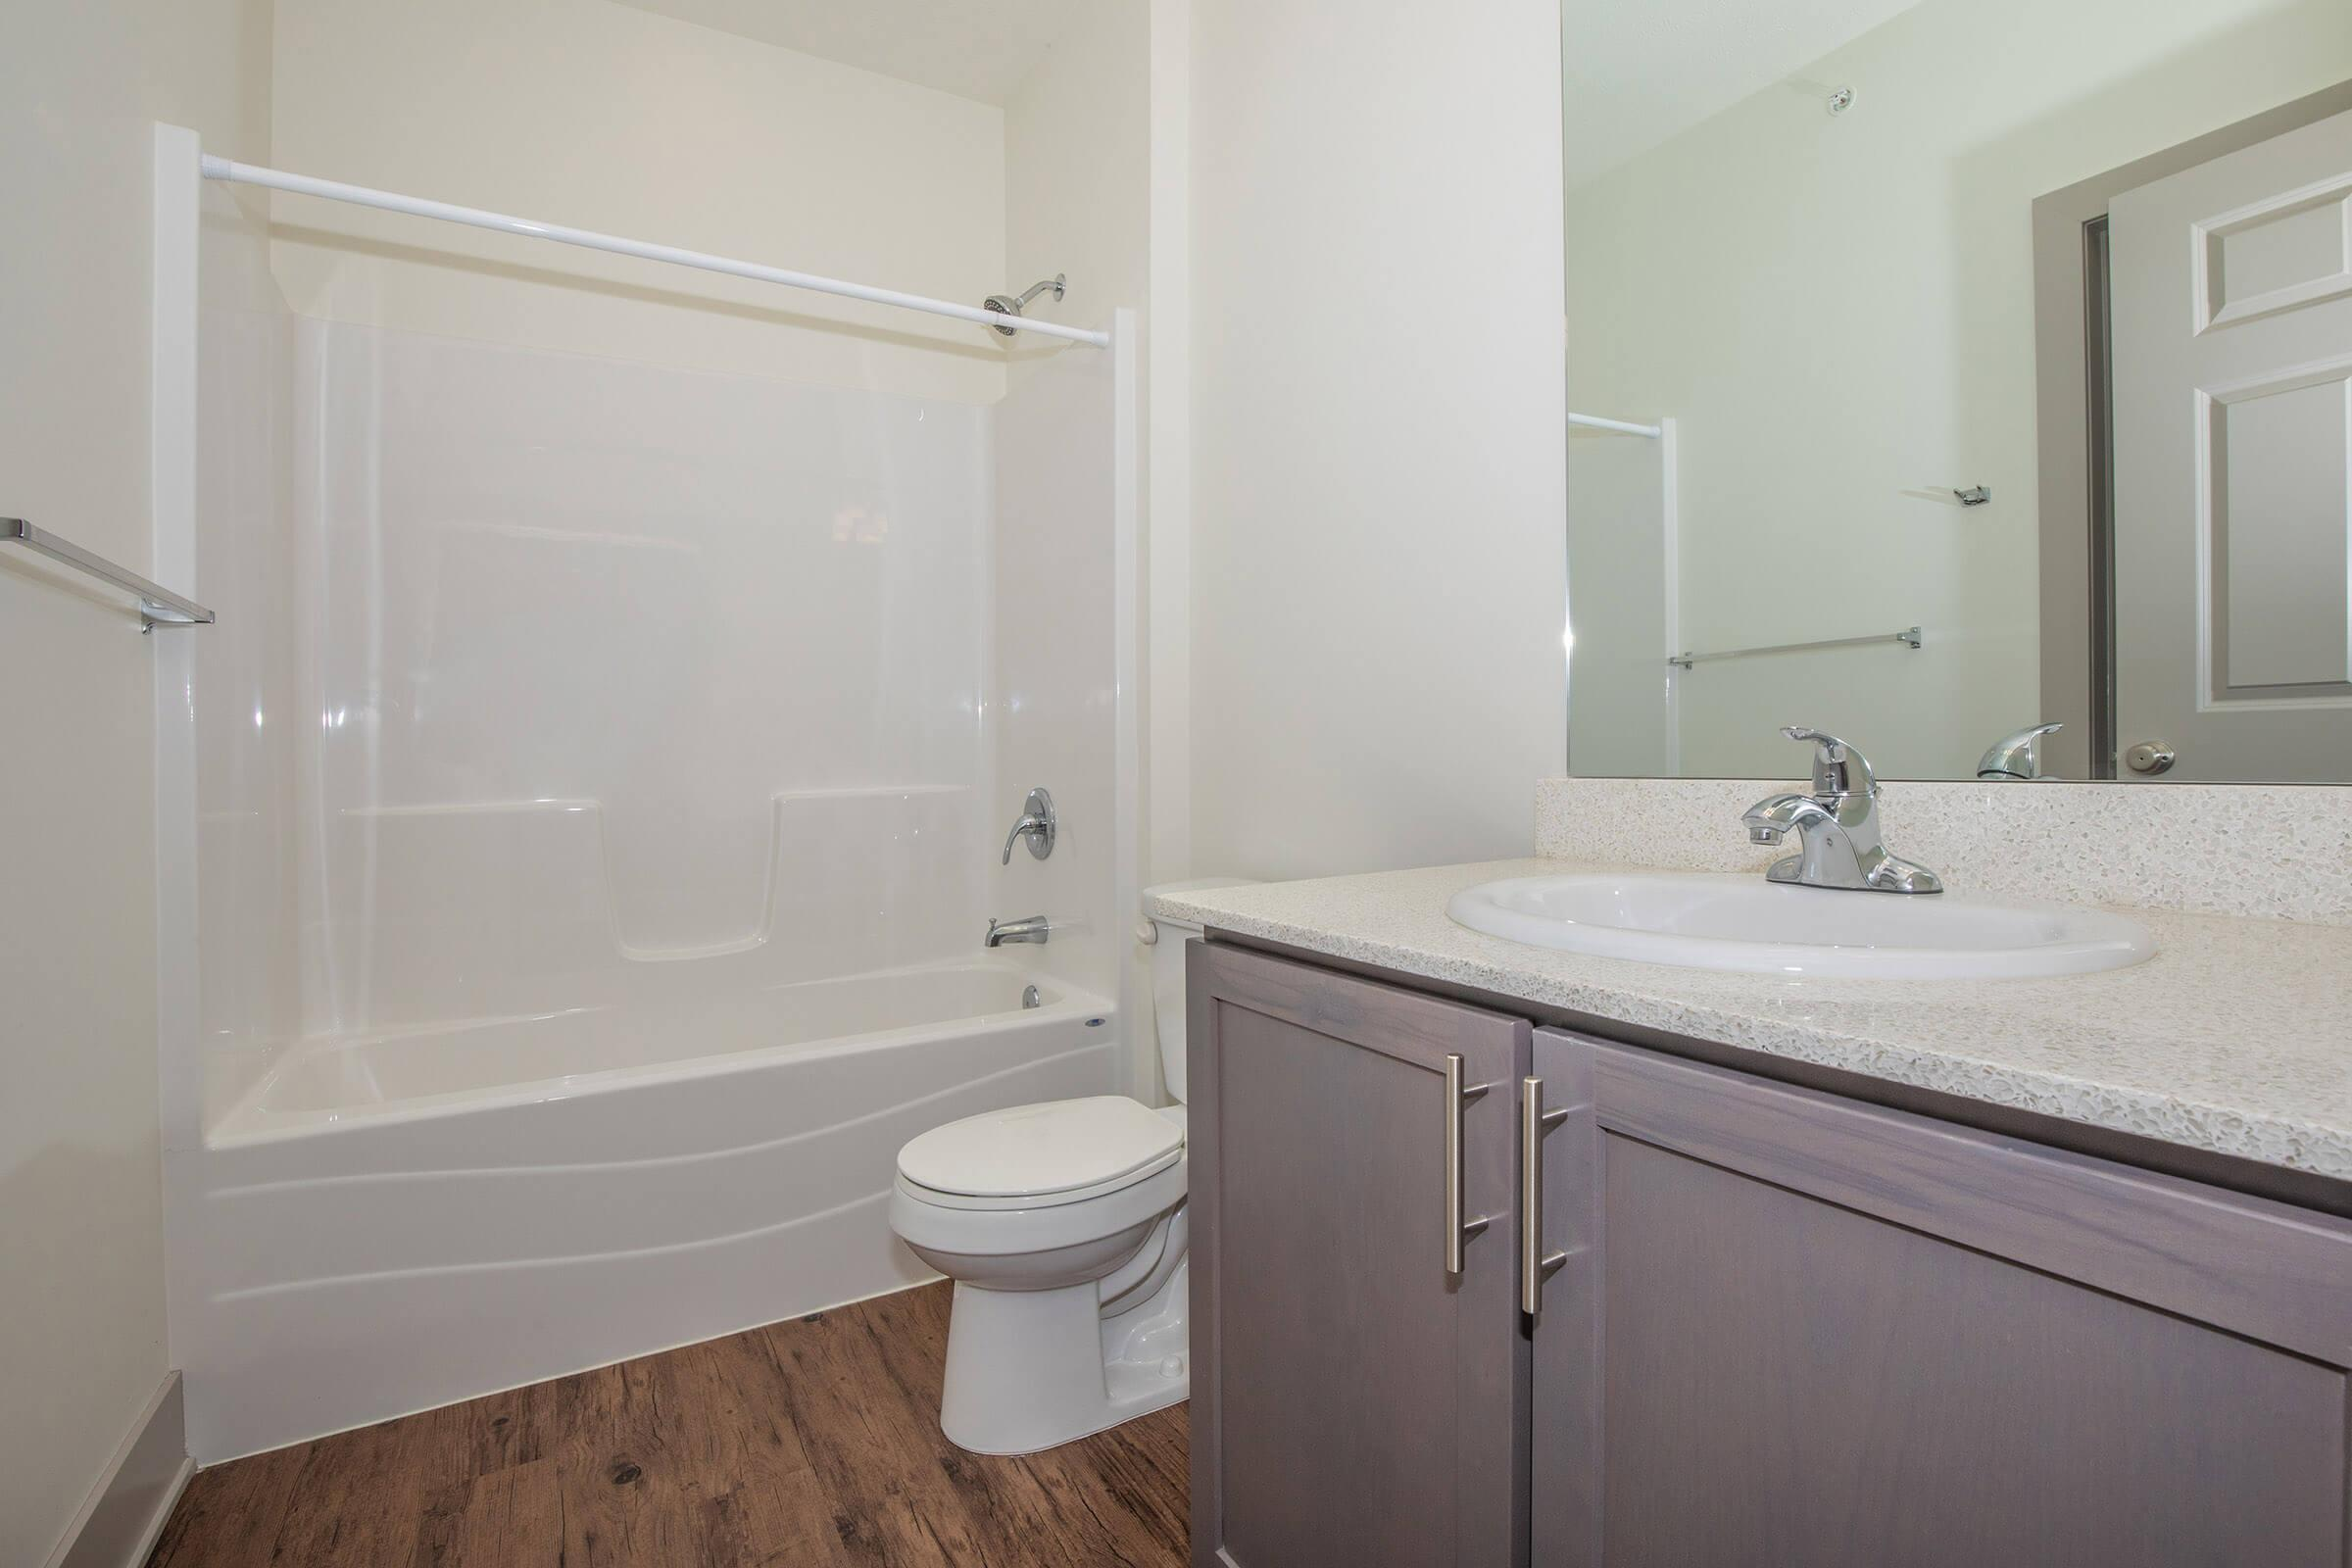 a room with a sink and a shower